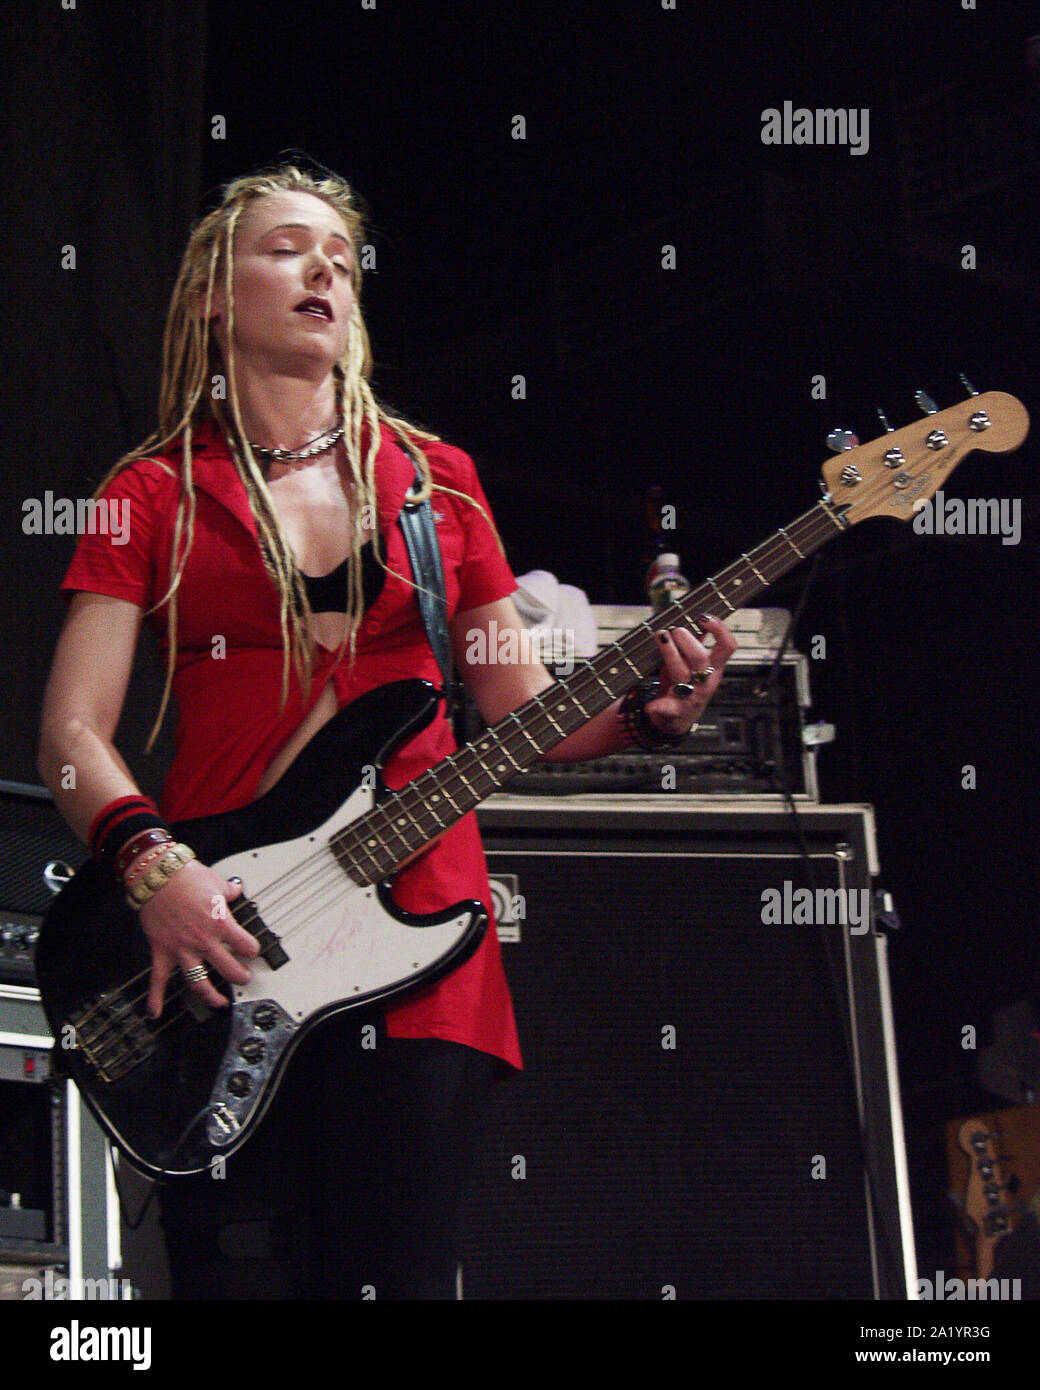 August 8 Leah Randi Of Abandoned Pools Performs At Lakewood Amphitheatre In Atlanta On August 8 2002 Credit Chris Mckay Mediapunch Stock Photo Alamy